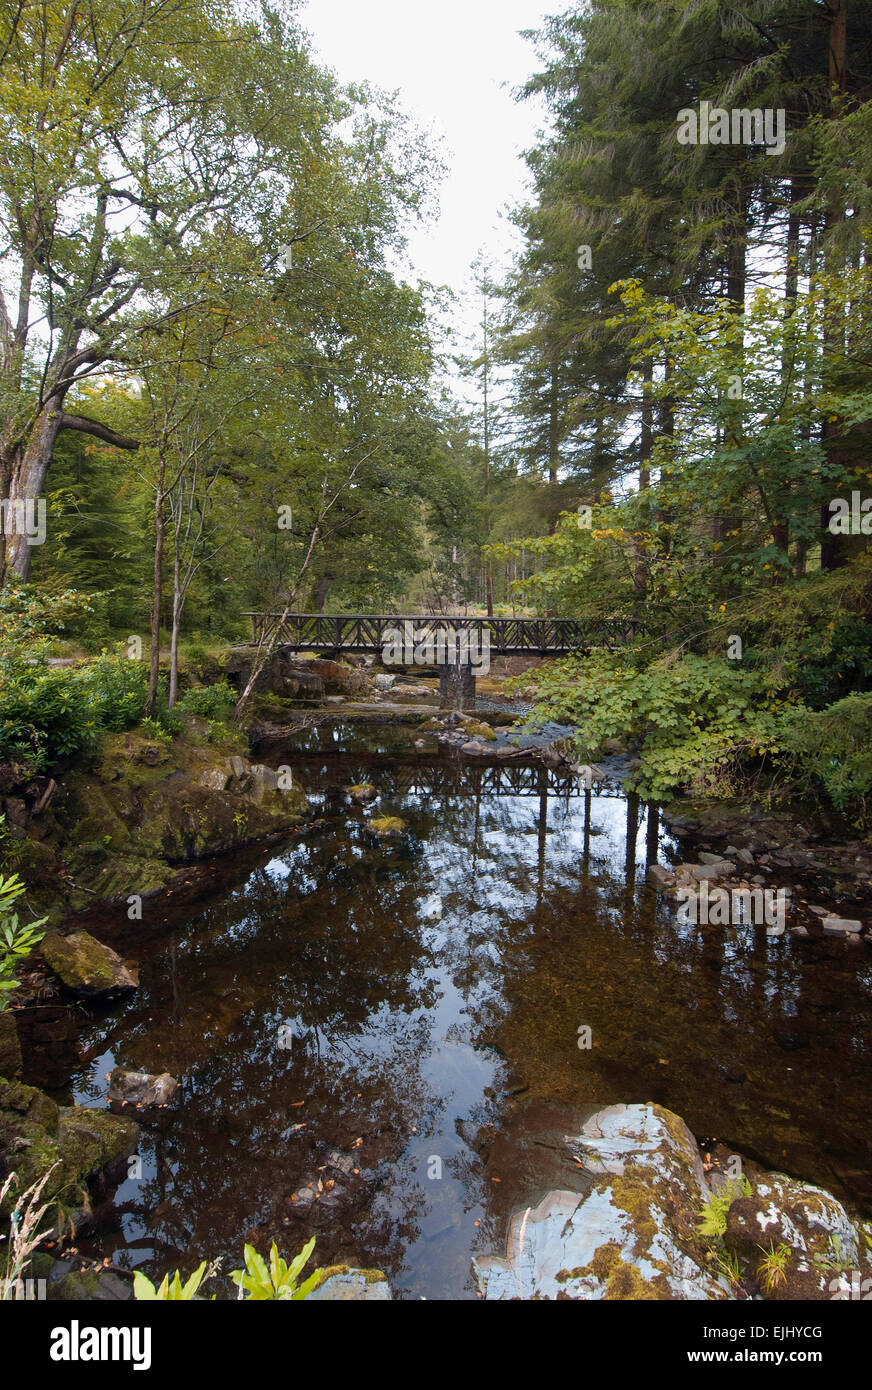 One of 16 bridges across the Shimna River in Tollymore Forest Park, Northern Ireland Stock Photo